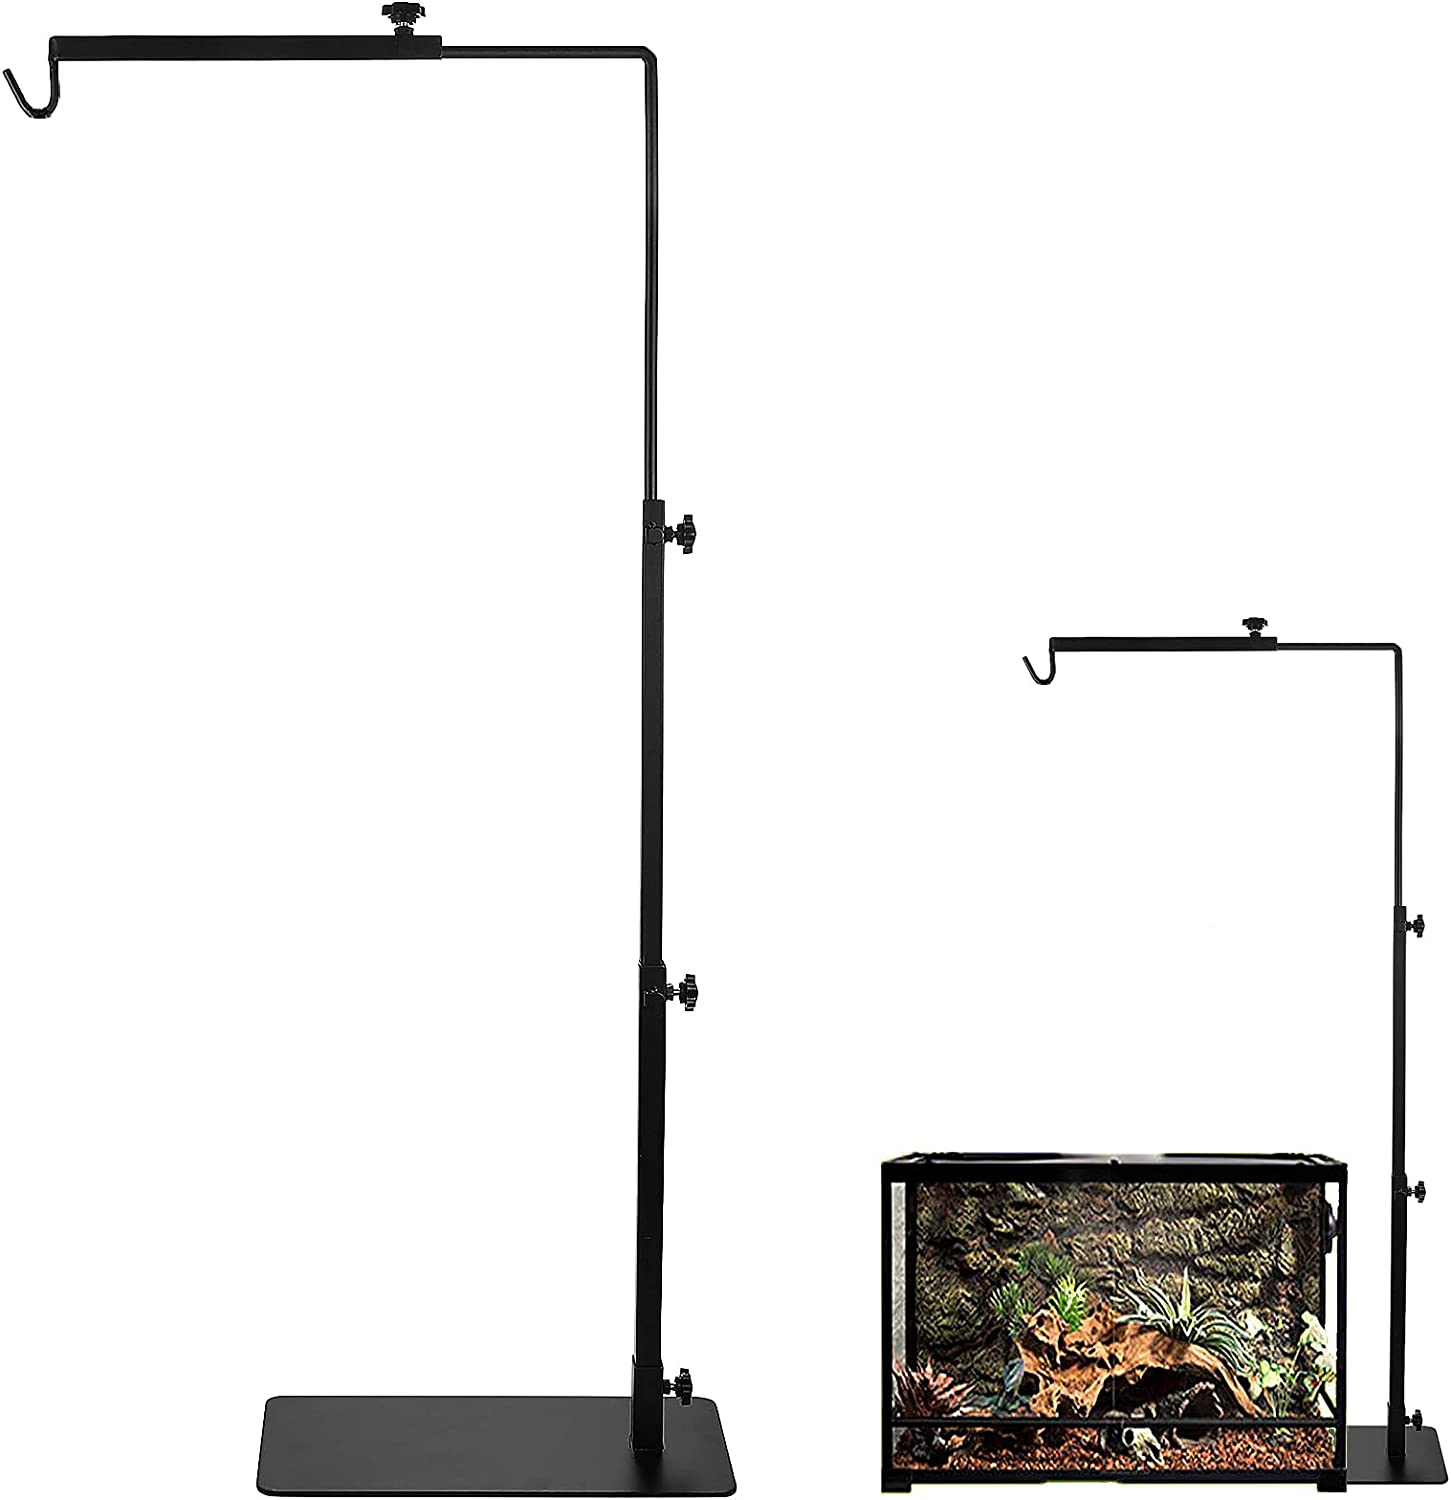 Reptile Metal Lamp Popular shop is Safety and trust the lowest price challenge Stand for Terrarium - Adjustable L Plants